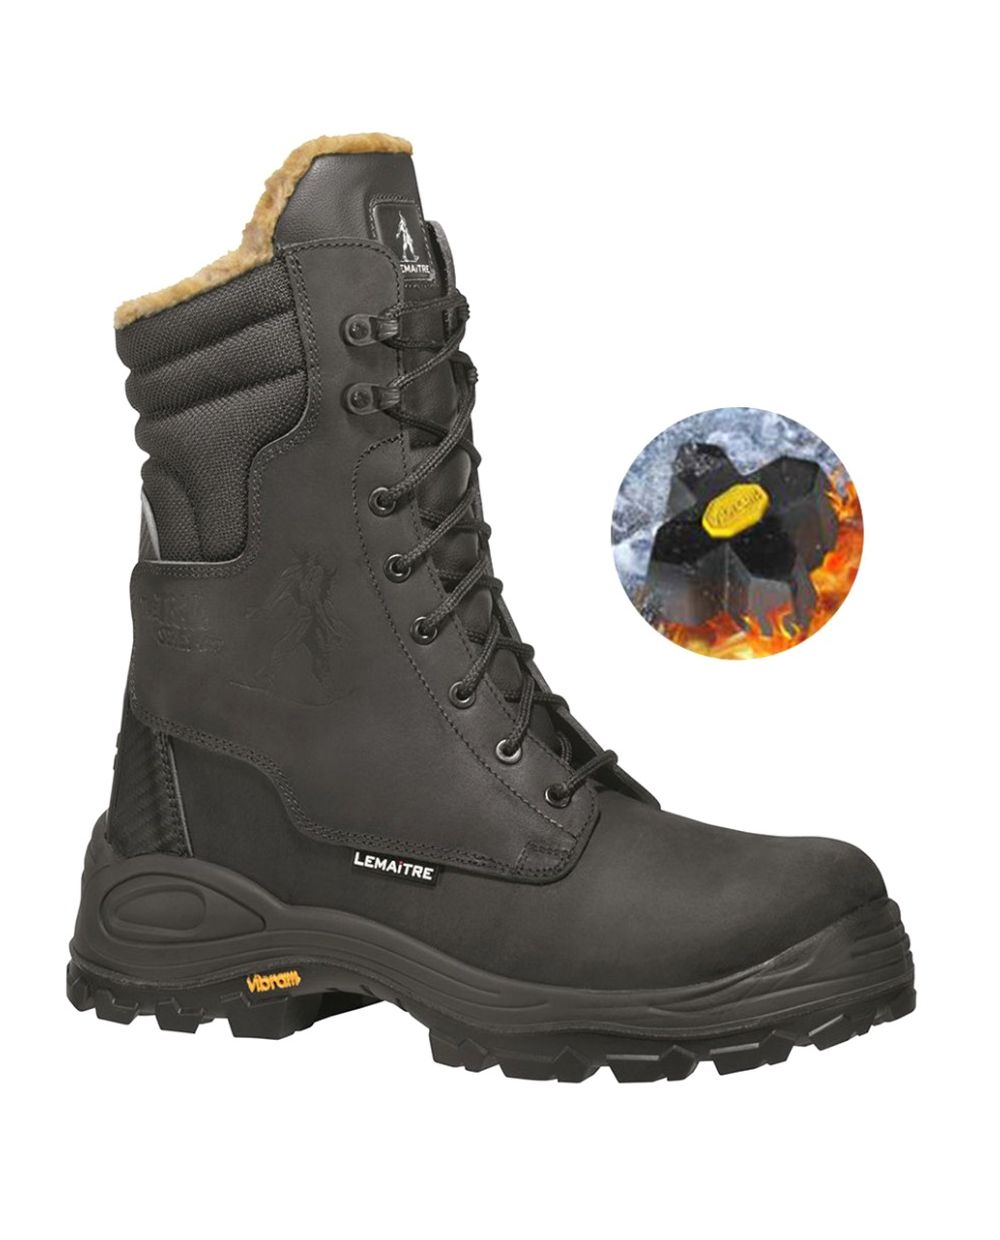 Tundra Vibram Thinsulate Fur Lined High Combat Boot - Black